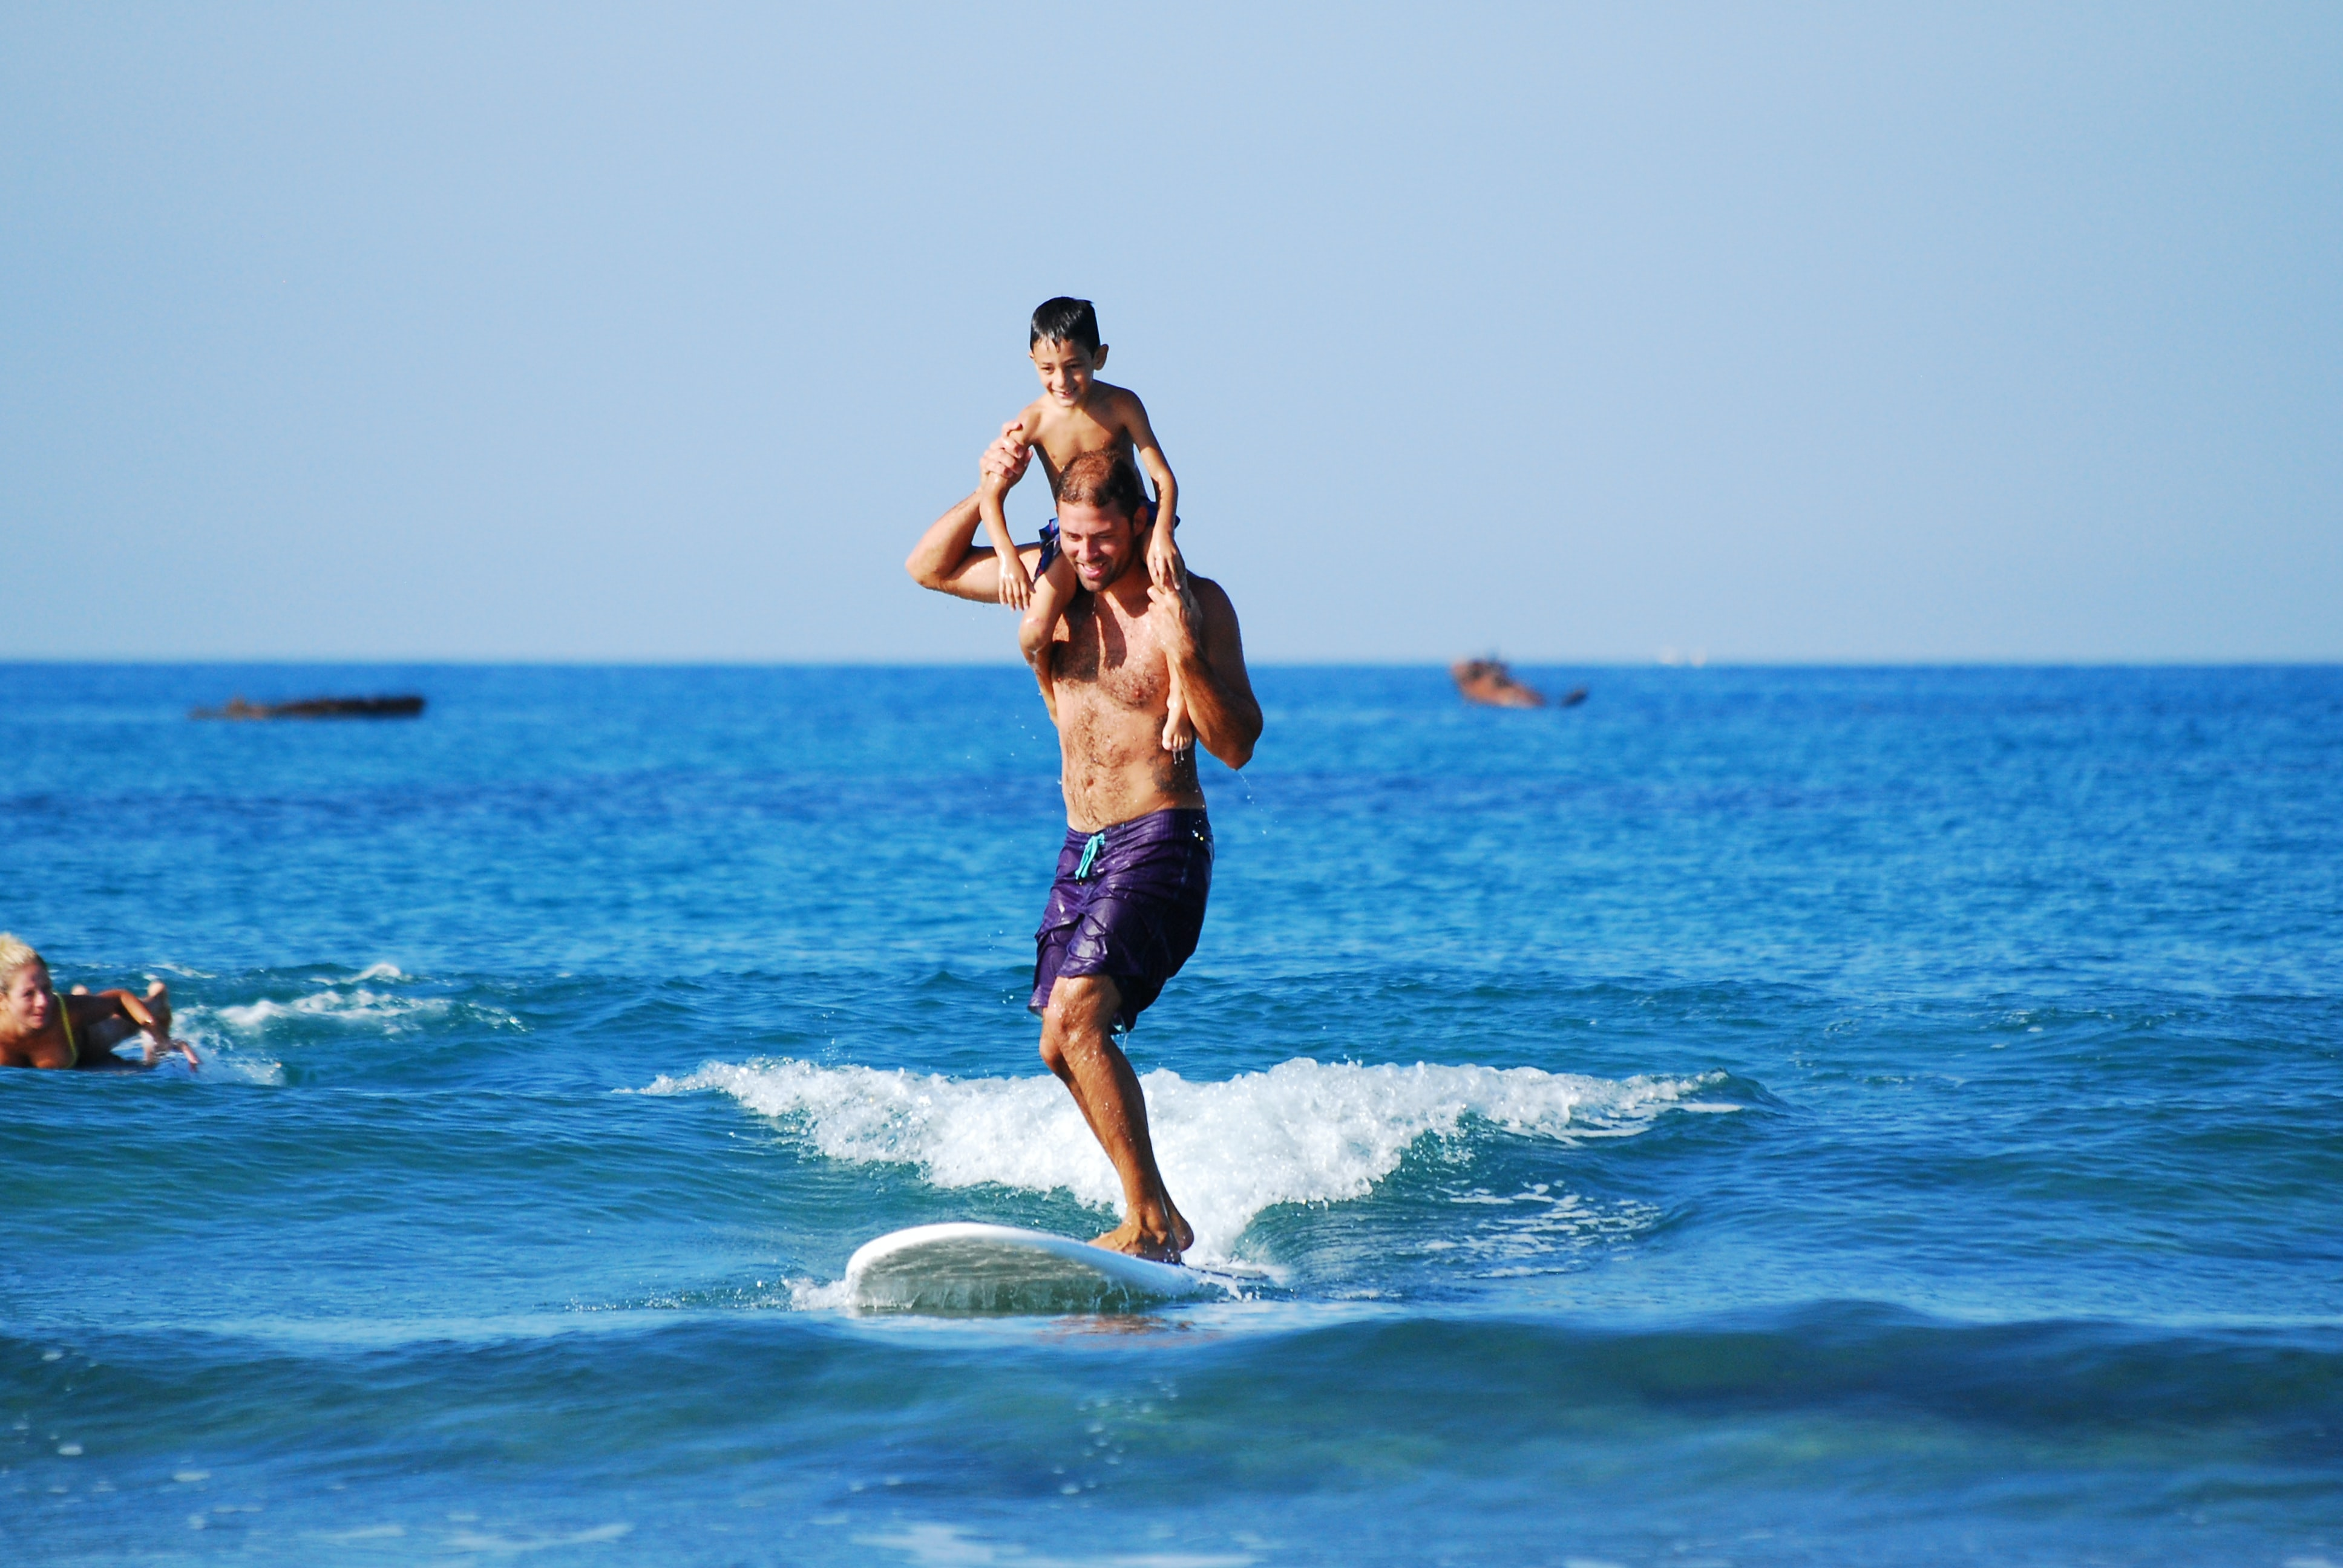 Boy on his father's shoulders, who is surfing on a board